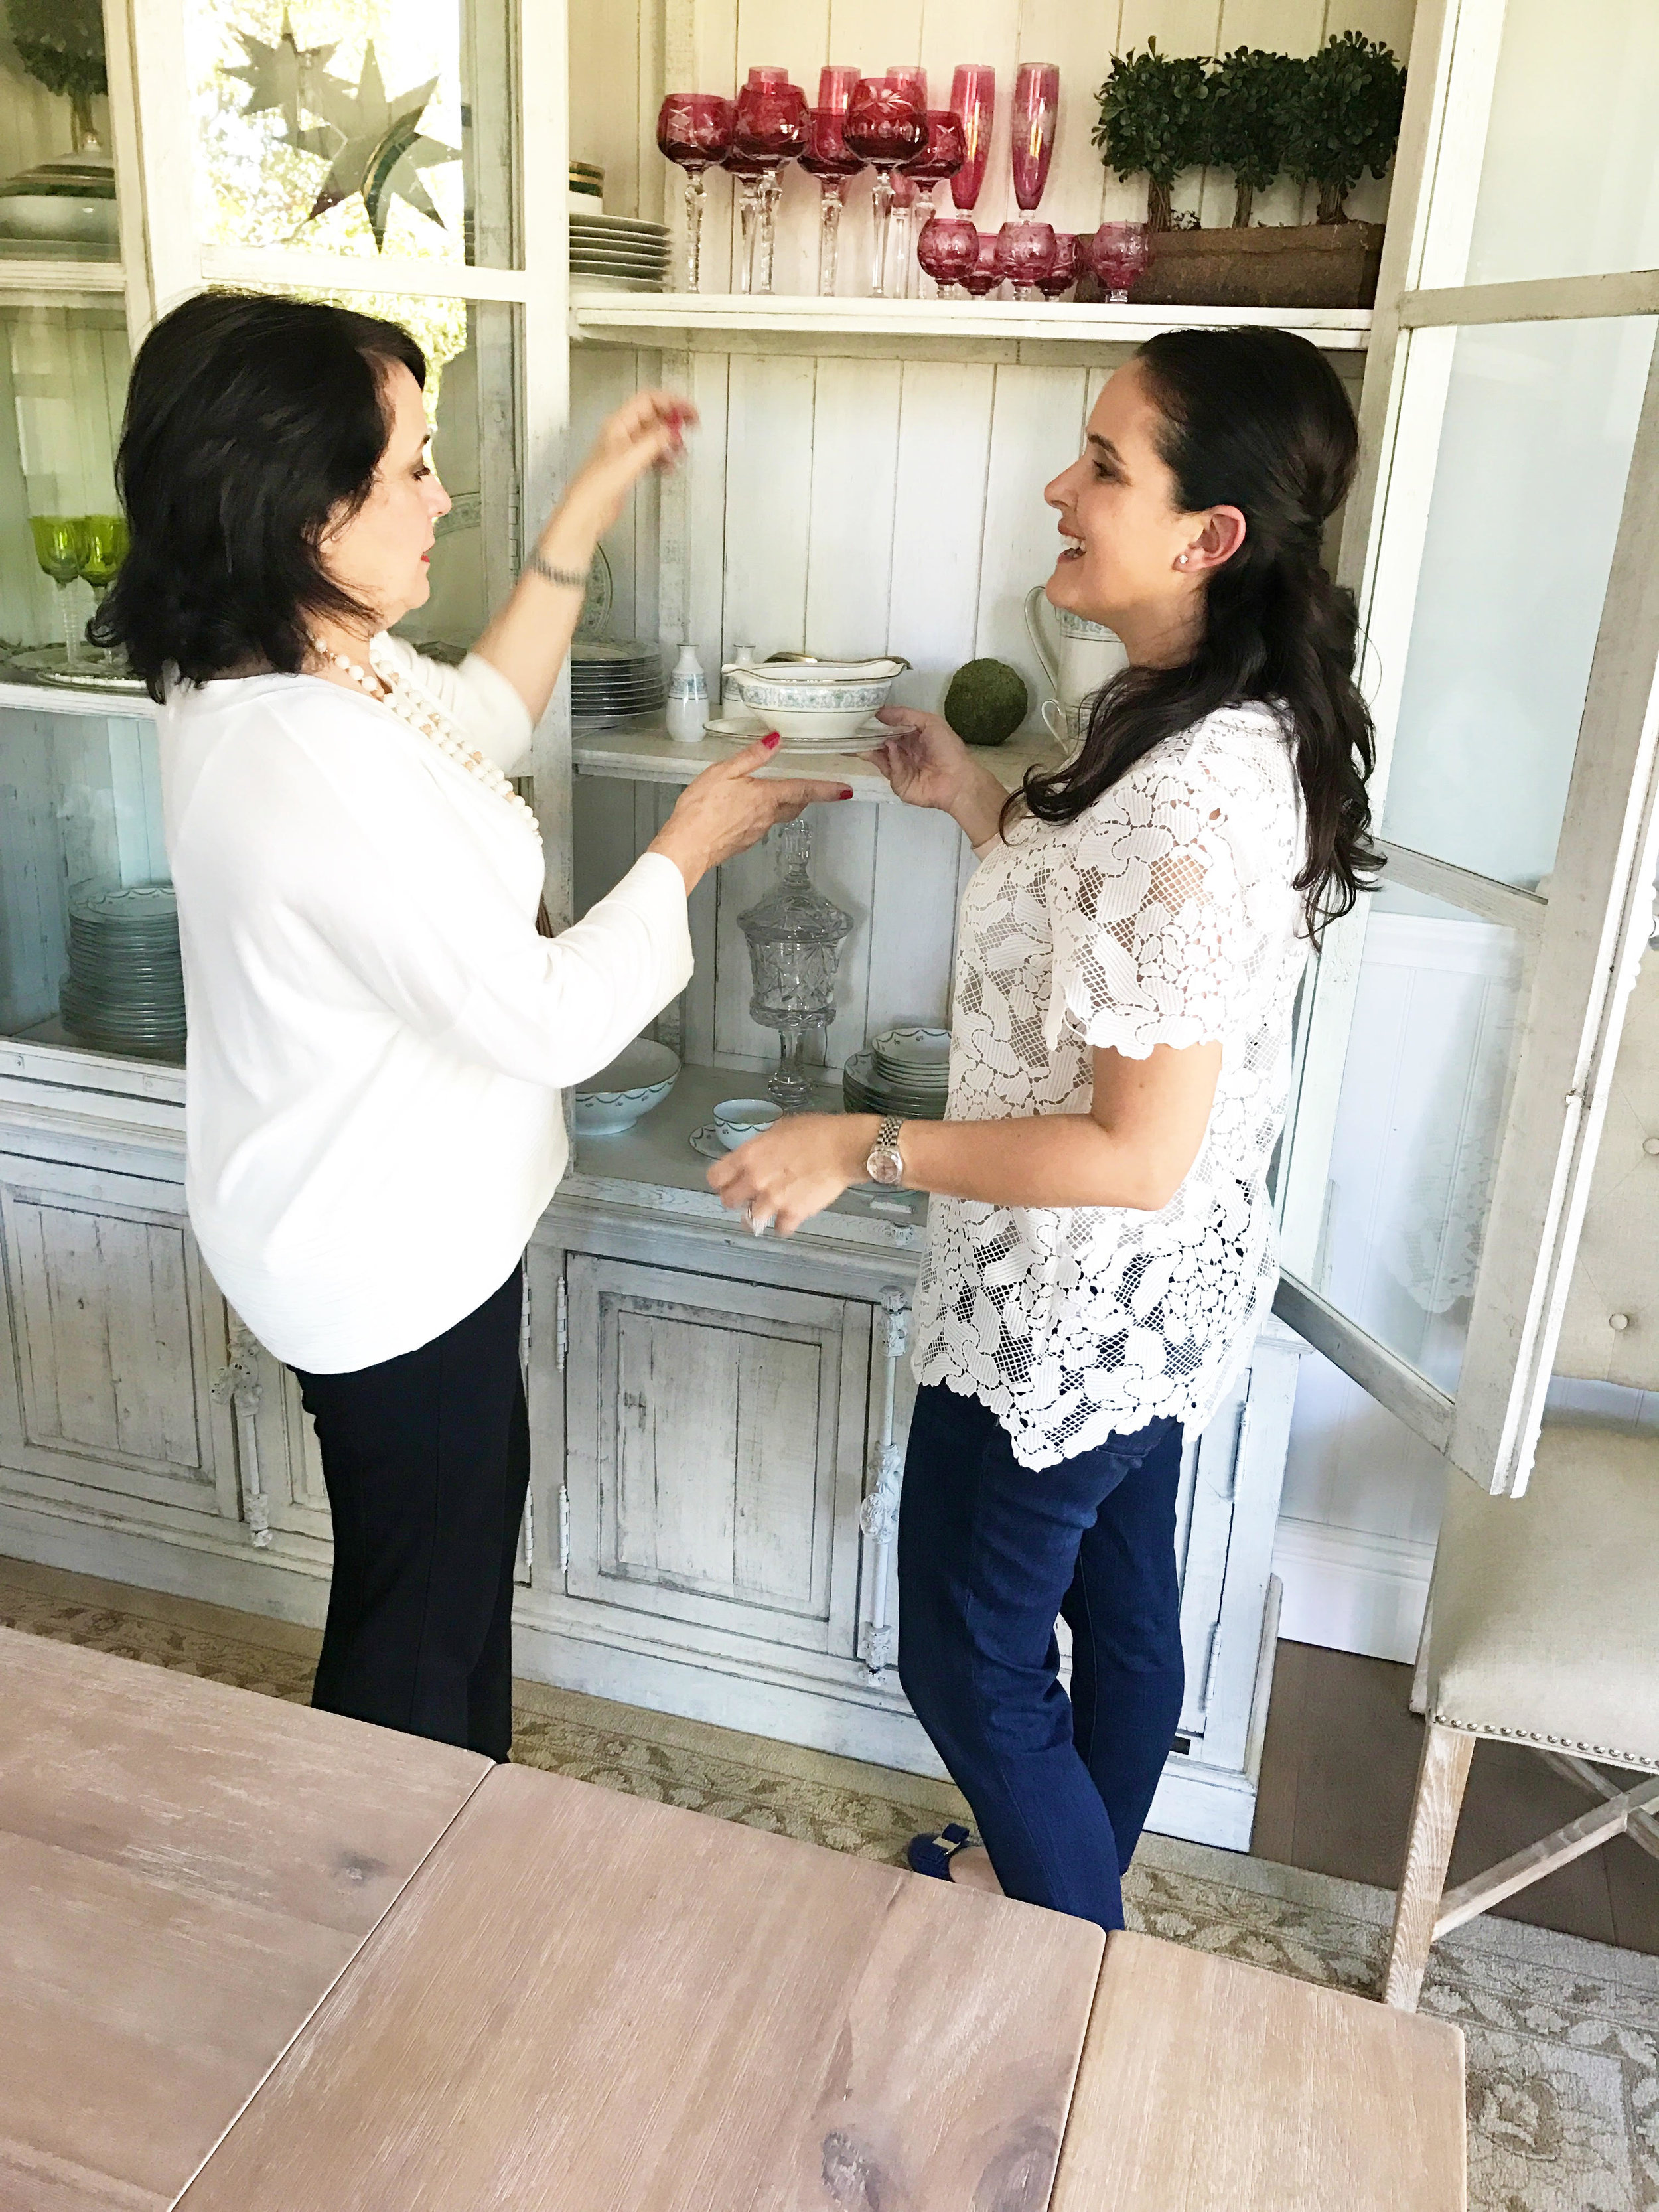 Luz Elena (l) and her daughter Luisa (r) discussing tableware at home.    (Photo Courtesy:   mesachicparties.com  )